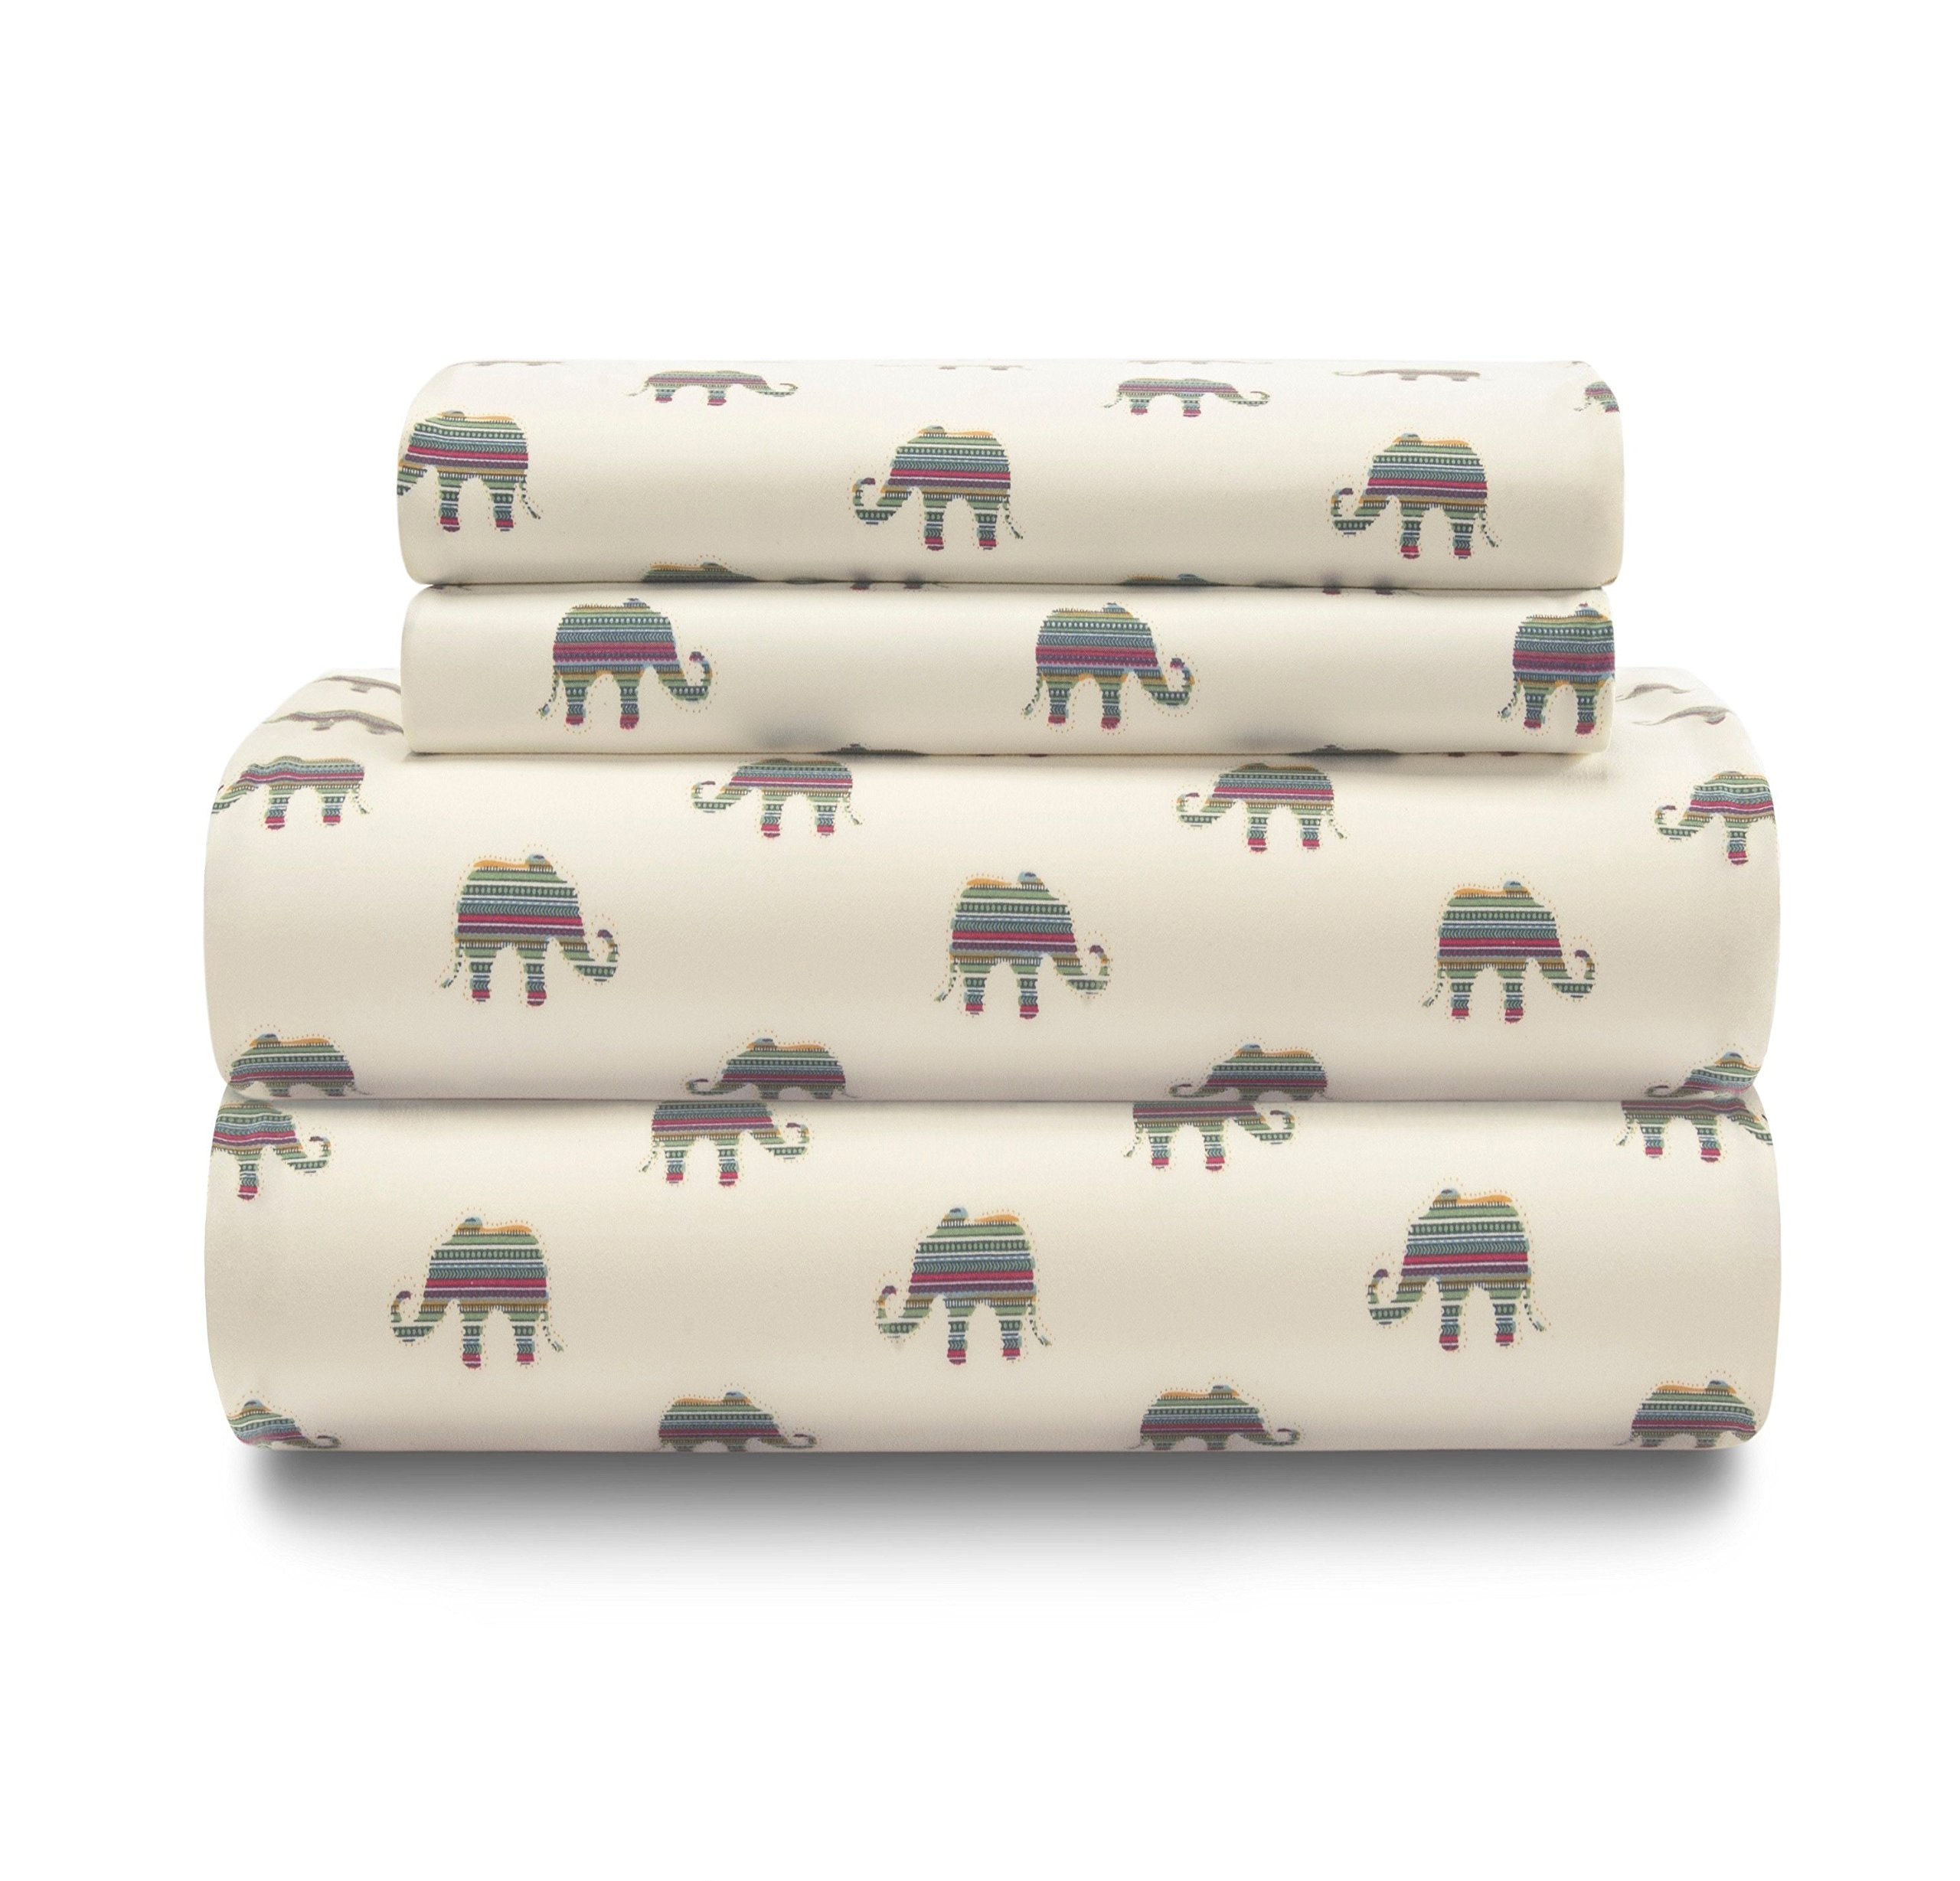 N-A 3 Piece Girls Elephant Cream Sheet Twin Set, Ivory Color Animal Print Boho Printed Kids Bedding Teen Bedroom, Whimsical Design Contemporary Zoo Jungle Safari, Polyester by N-A